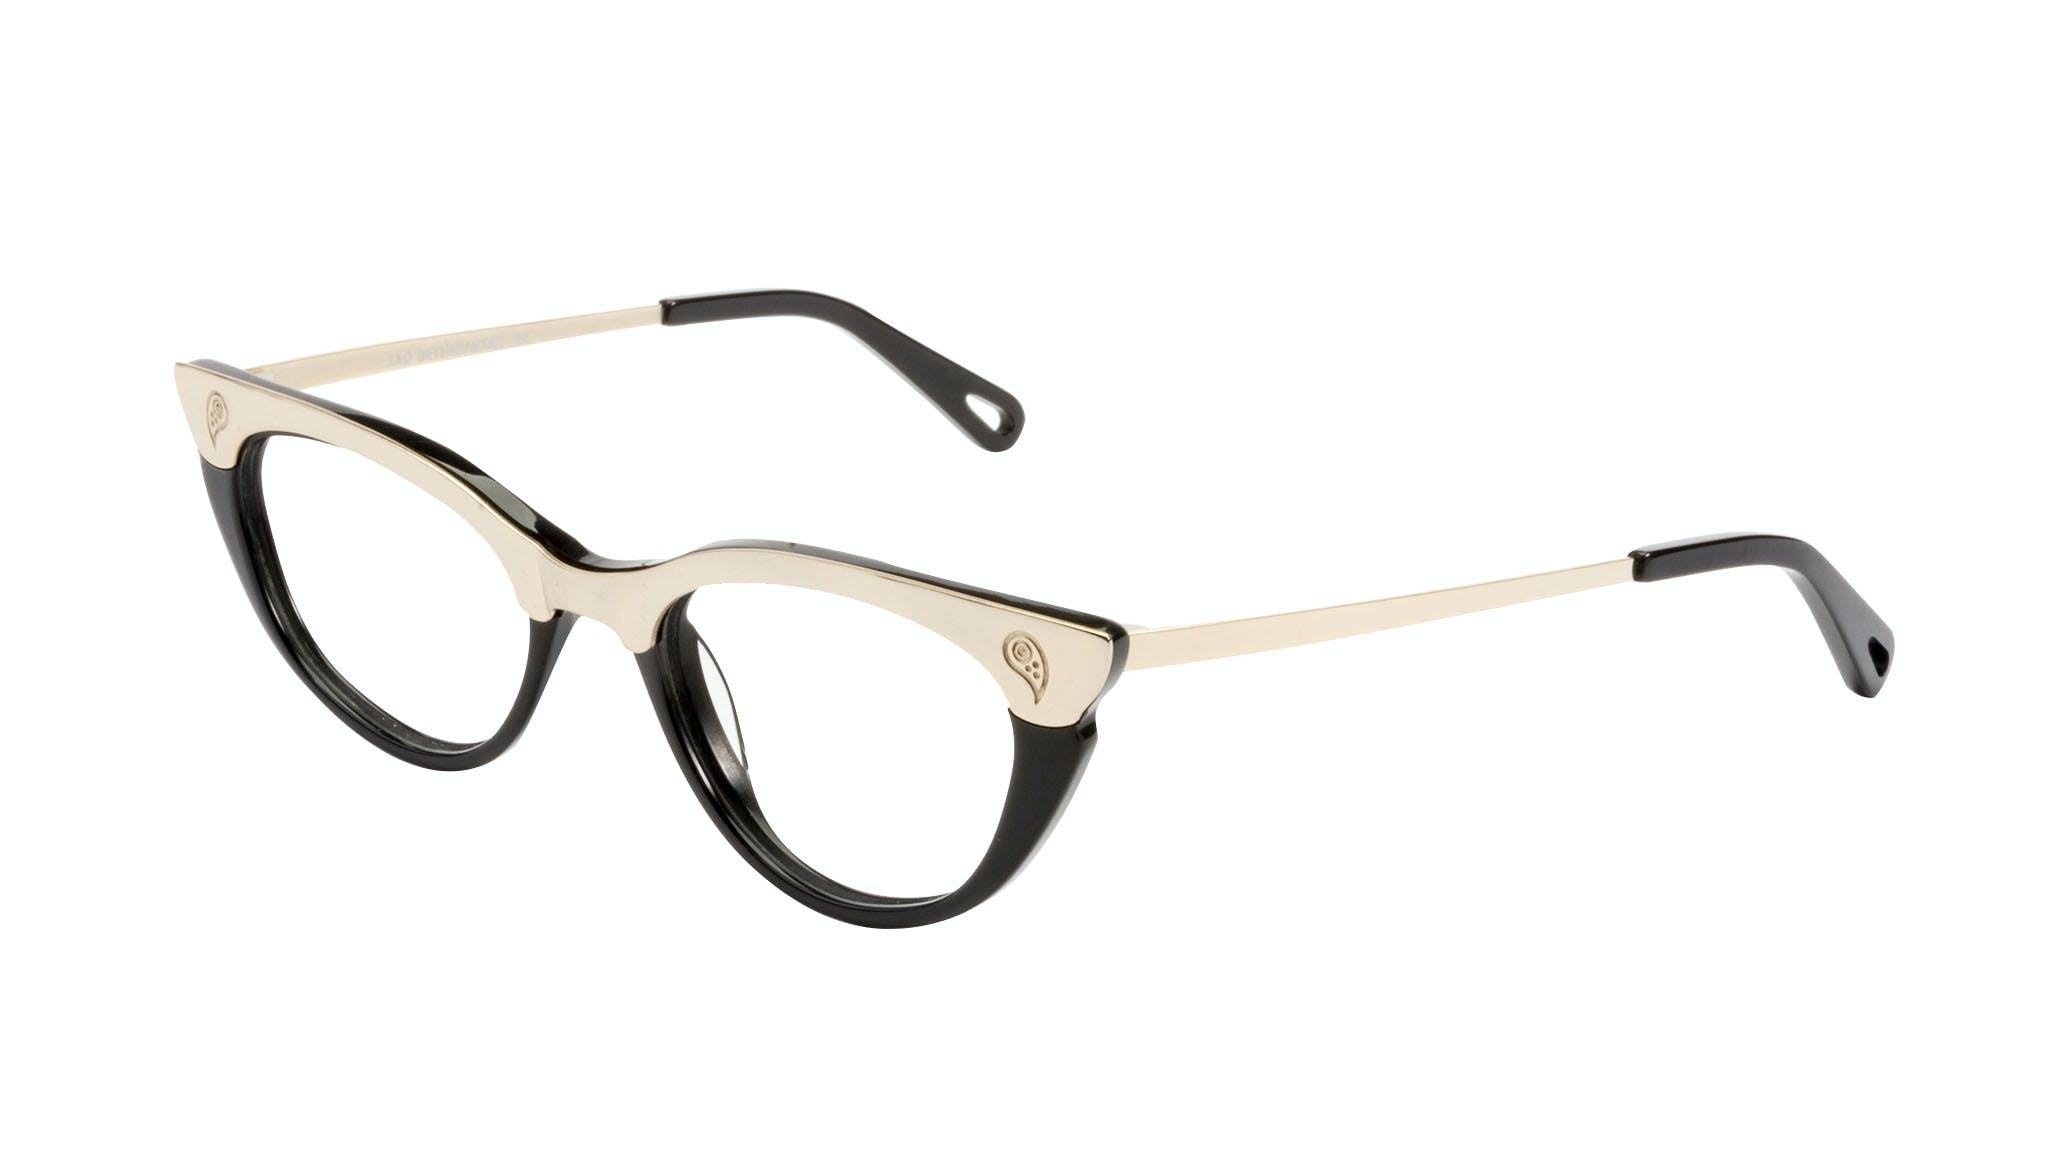 Affordable Fashion Glasses Cat Eye Daring Cateye Eyeglasses Women Bad Beti Mumtaz Tilt